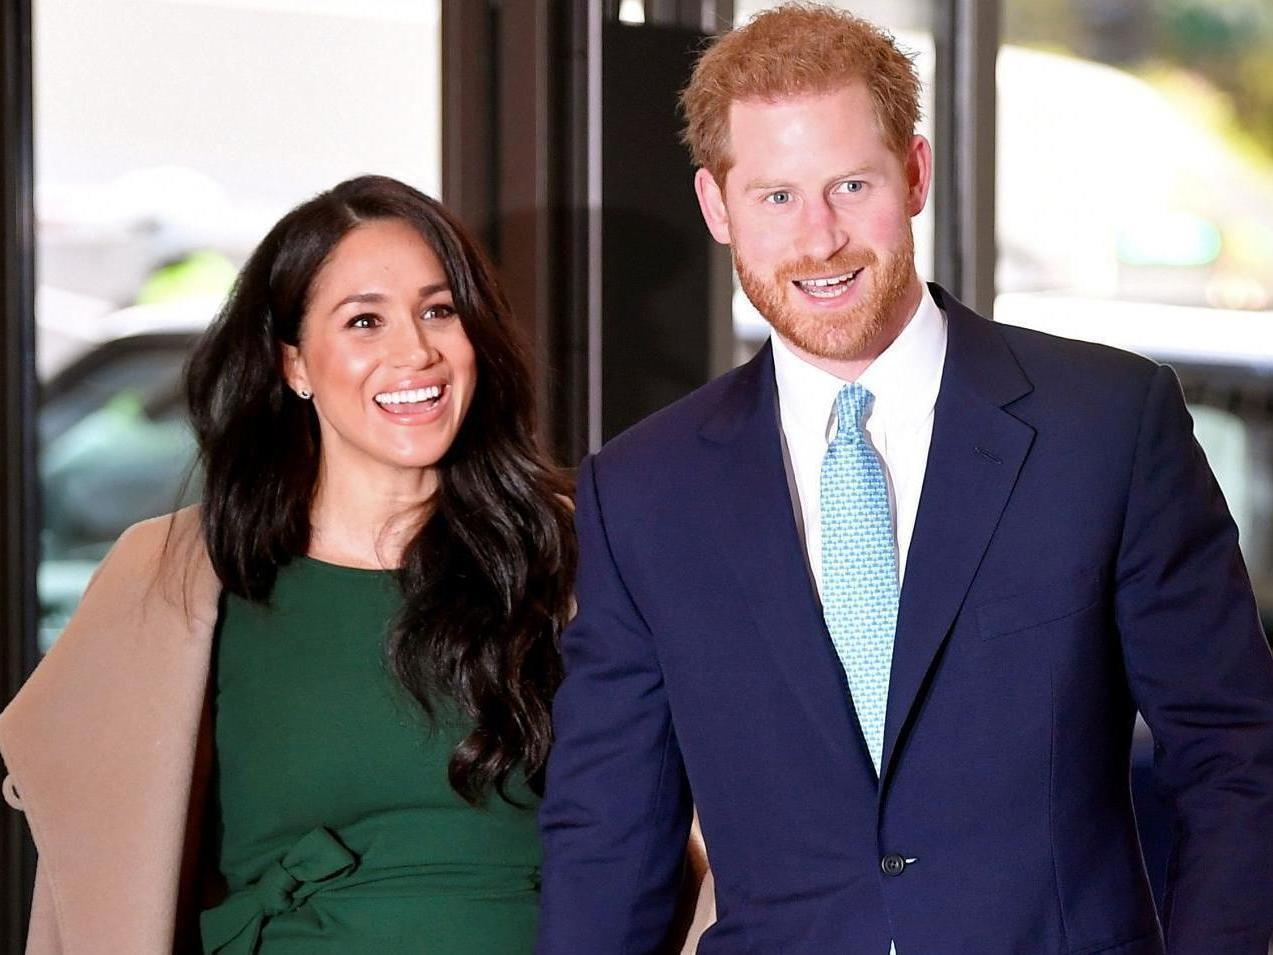 Prince Harry and Meghan Markle deliver meals to people in need amid coronavirus pandemic thumbnail